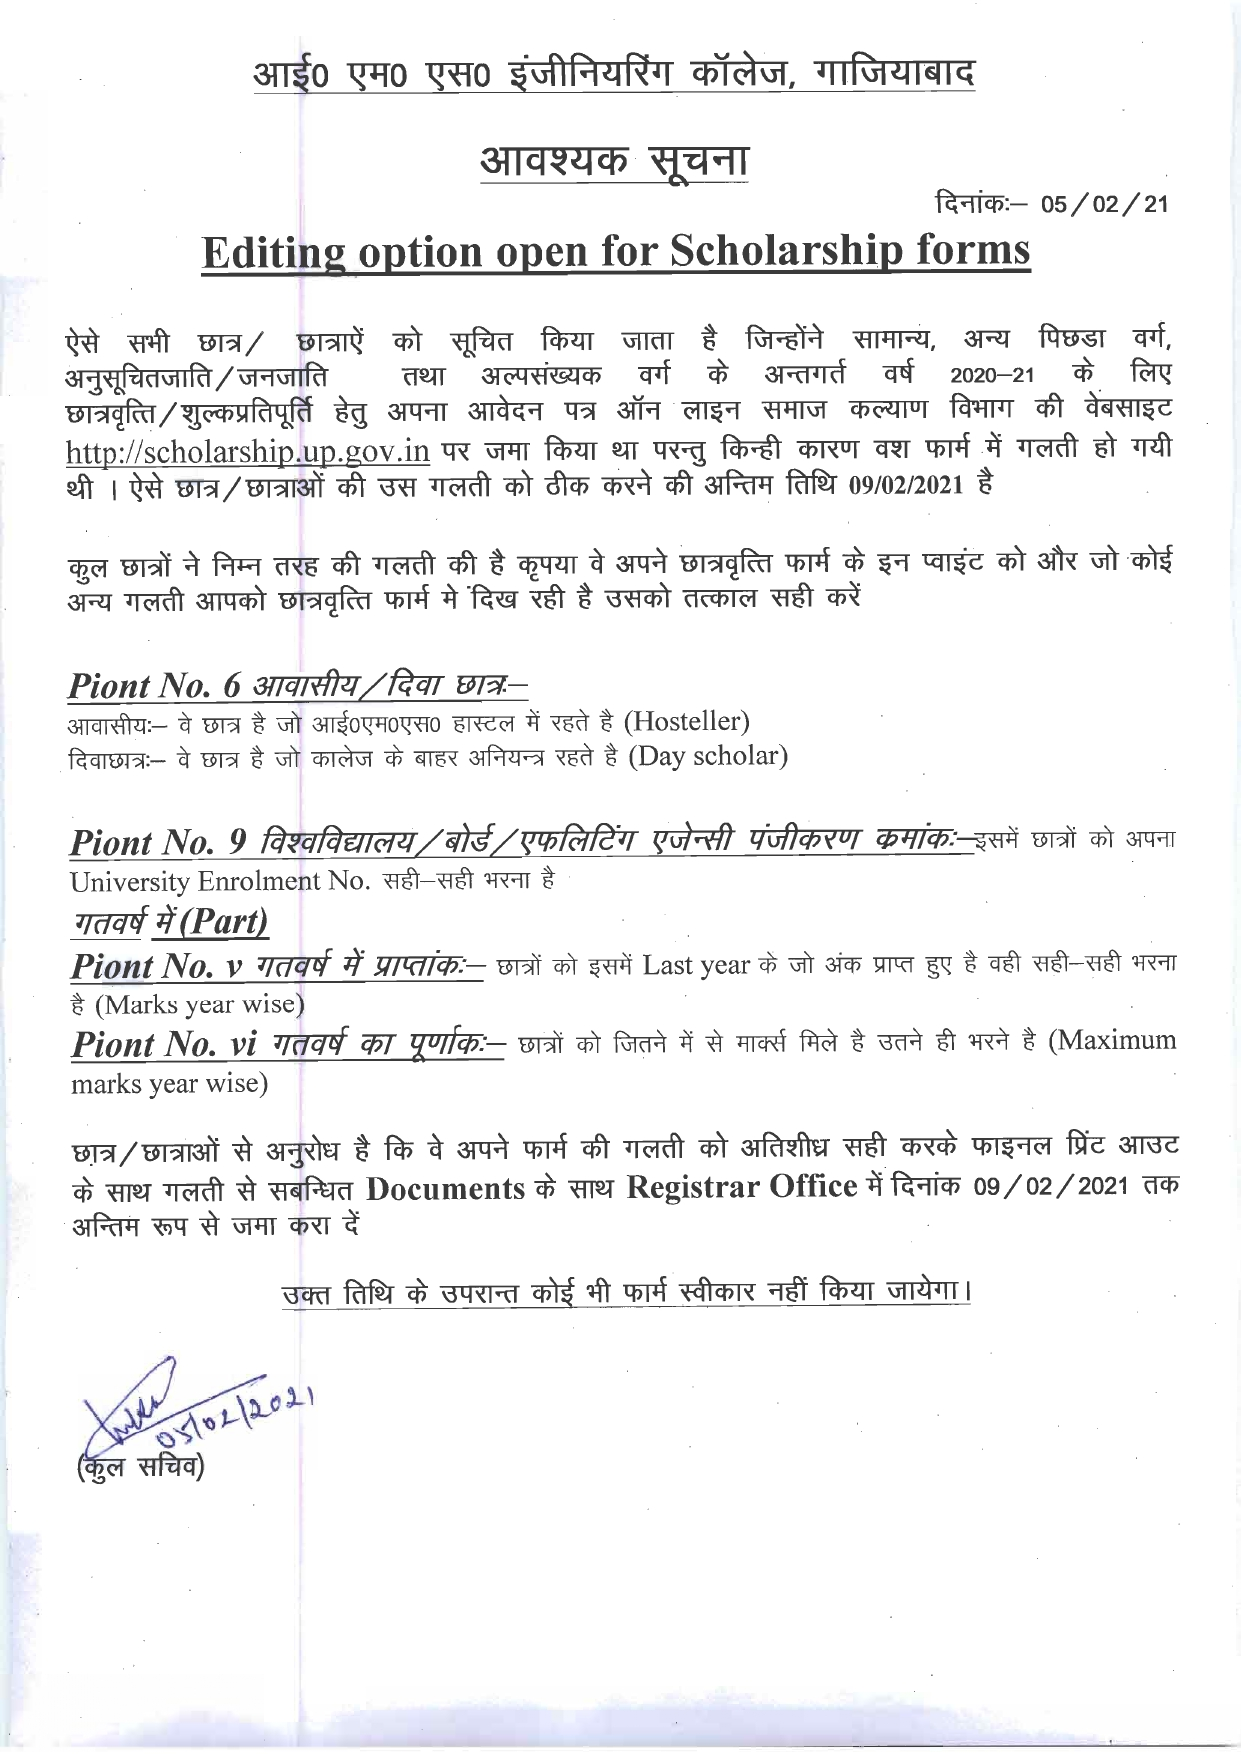 Notice Reg. Editing option open for Scholarship forms (Last date 09/02/21)